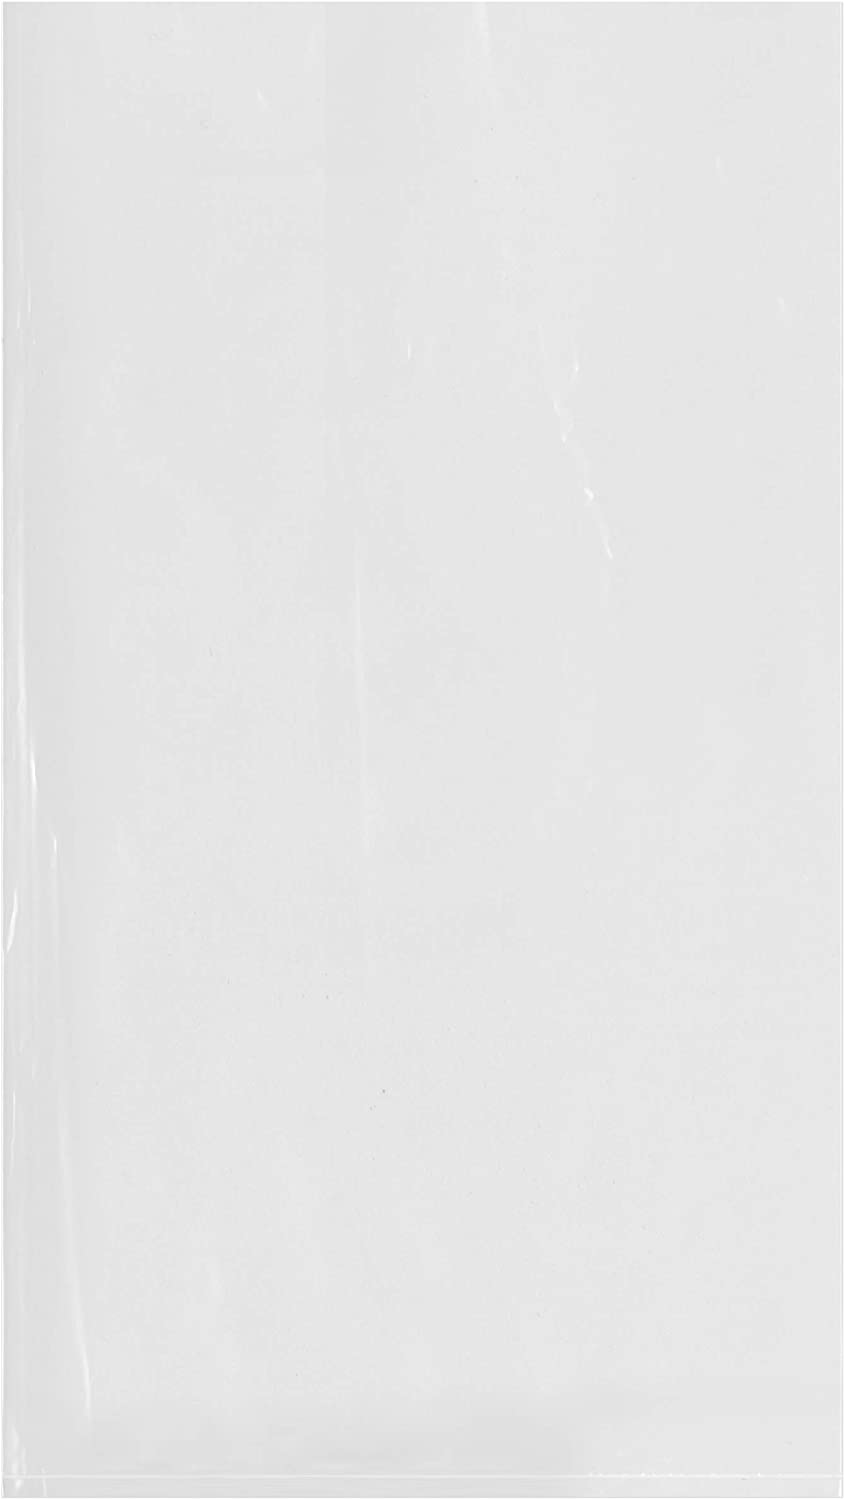 Plymor Flat Open Clear Plastic Poly Bags, 2 Mil, 9